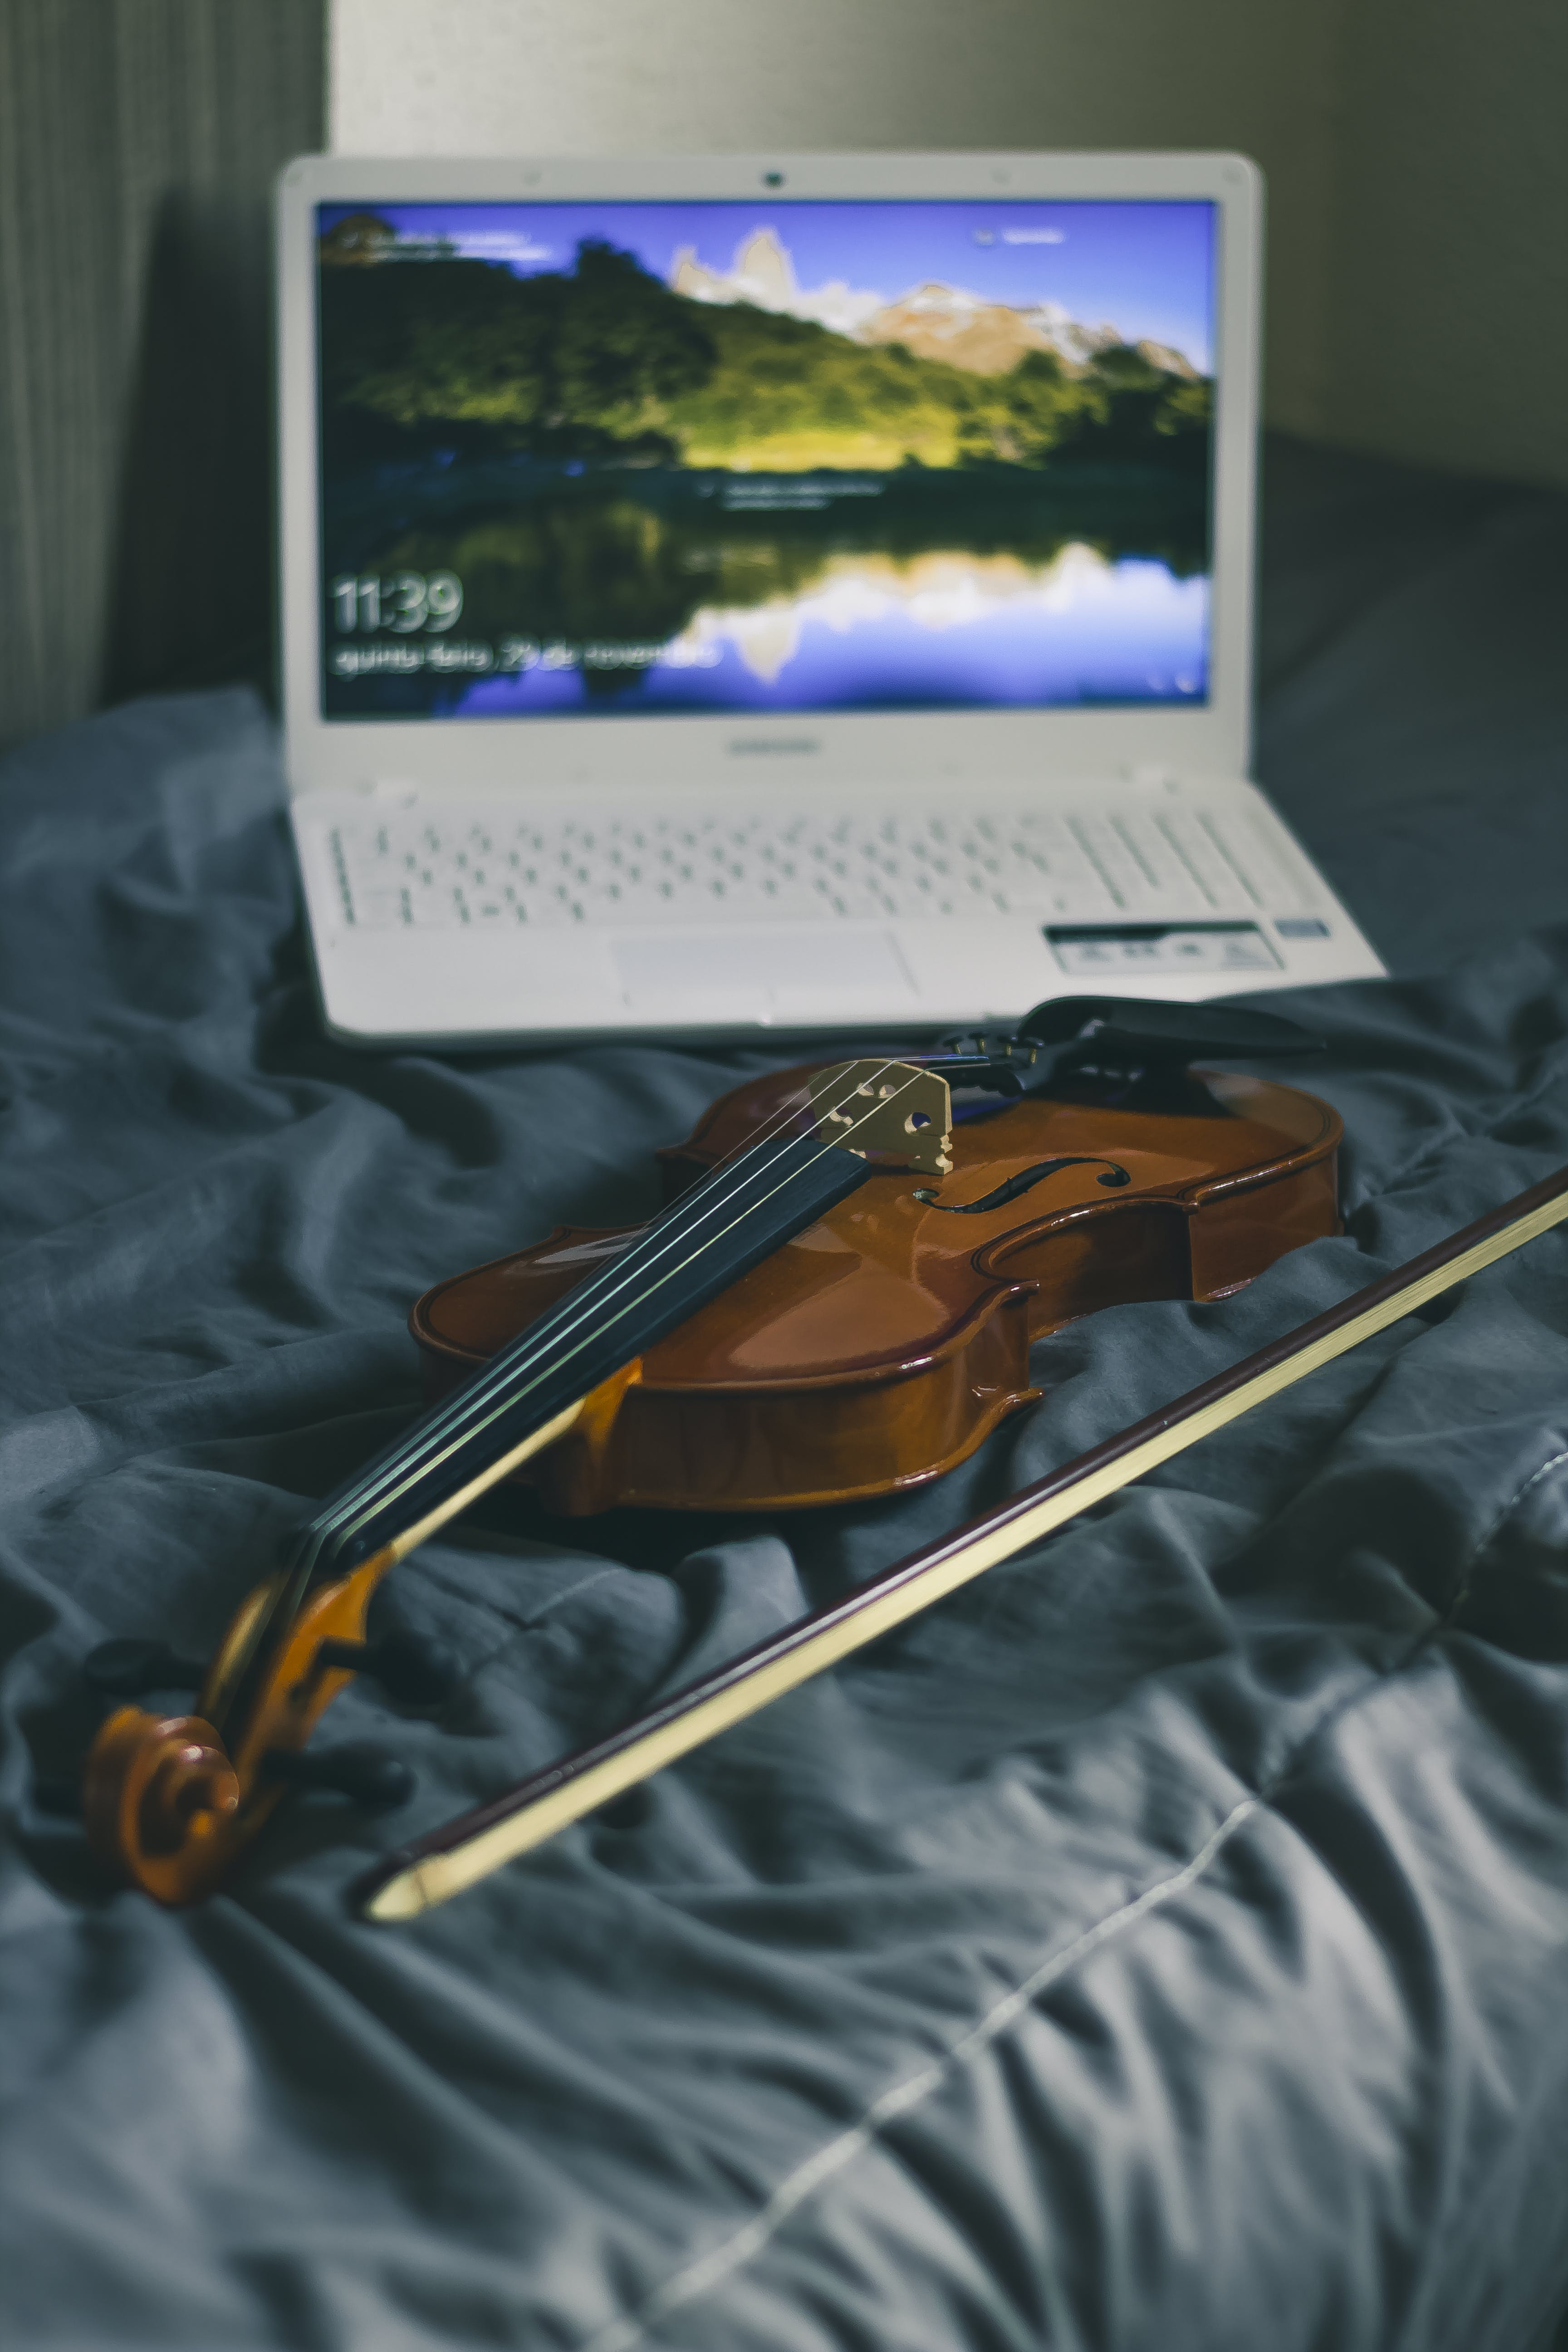 Photograph of White Laptop and Violin